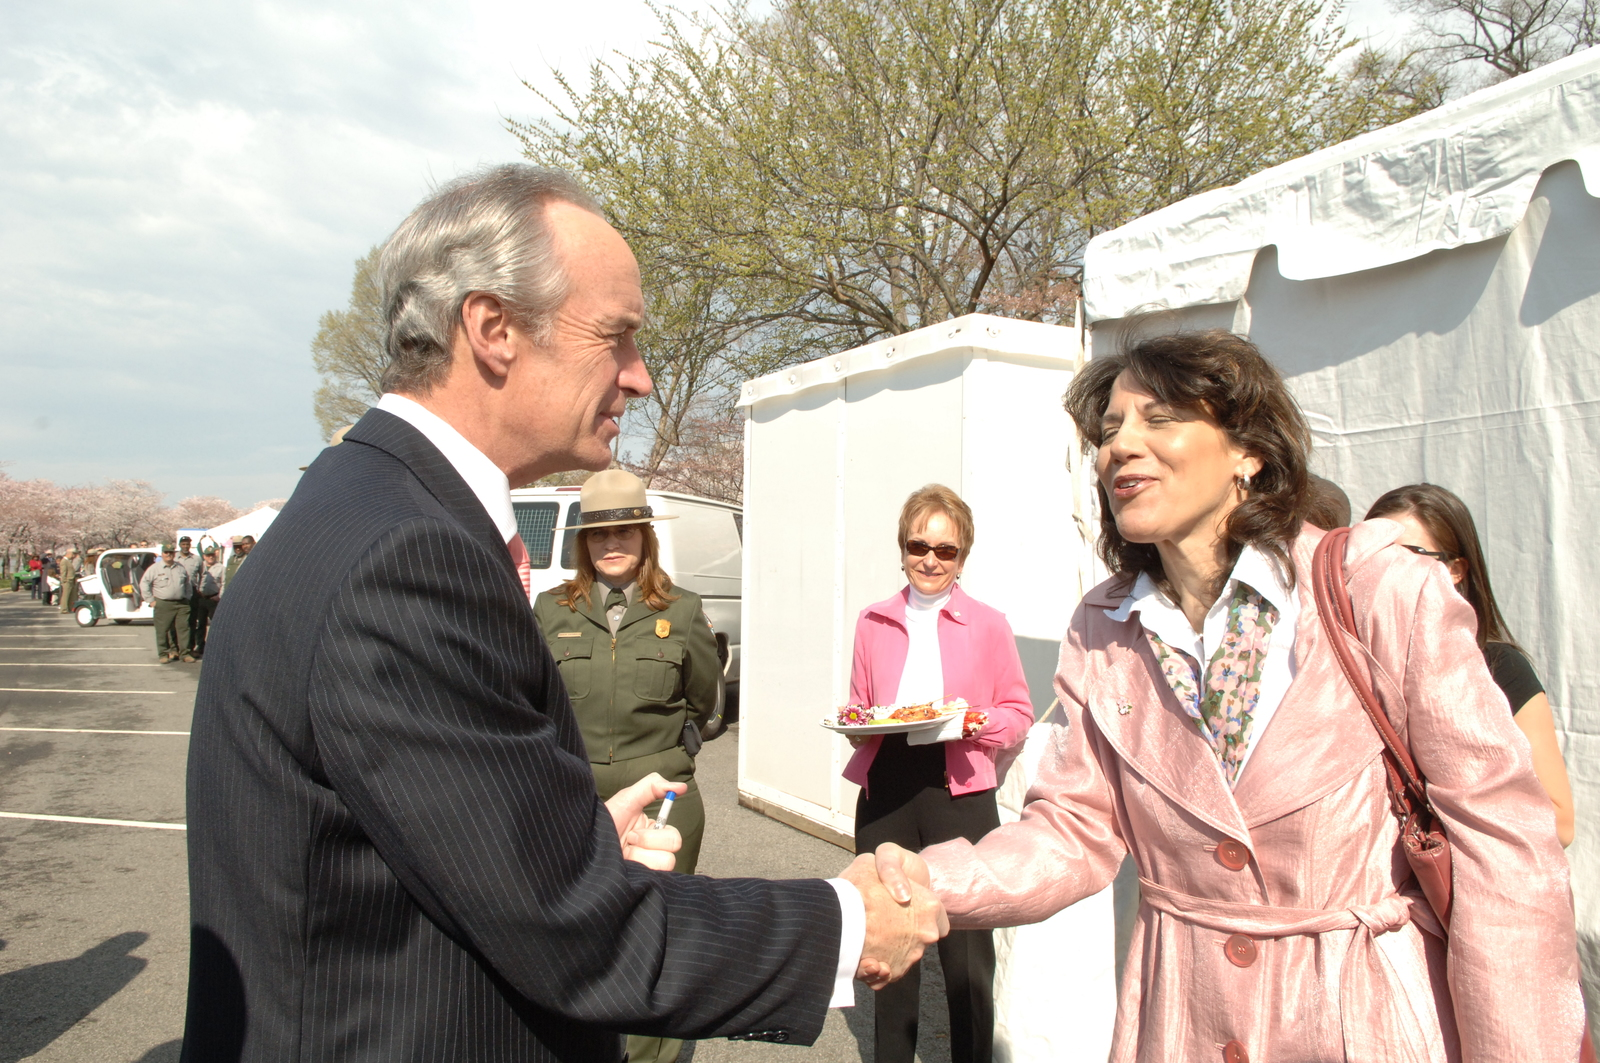 [Assignment: 48-DPA-03-28-08_SOI_K_NPS_Cherry] Visit of Secretary Dirk Kempthorne to Washington, D.C.'s Tidal Basin [and surrounding area, where he joined National Park Service Director Mary Bomar, National Mall and Memorial Parks Superintendent Peggy O'Dell, and National Cherry Blossom Festival, Inc. President Diana Mayhew for a] press conference [announcement of new and enhanced visitor services on the National Mall in time for the] 2008 Cherry Bloossom Festival. [The Secretary also spoke with National Park Service staff, U.S. Park Police personnel, and visitors around the Tidal Basin and National Mall.] [48-DPA-03-28-08_SOI_K_NPS_Cherry_IOD_2702.JPG]